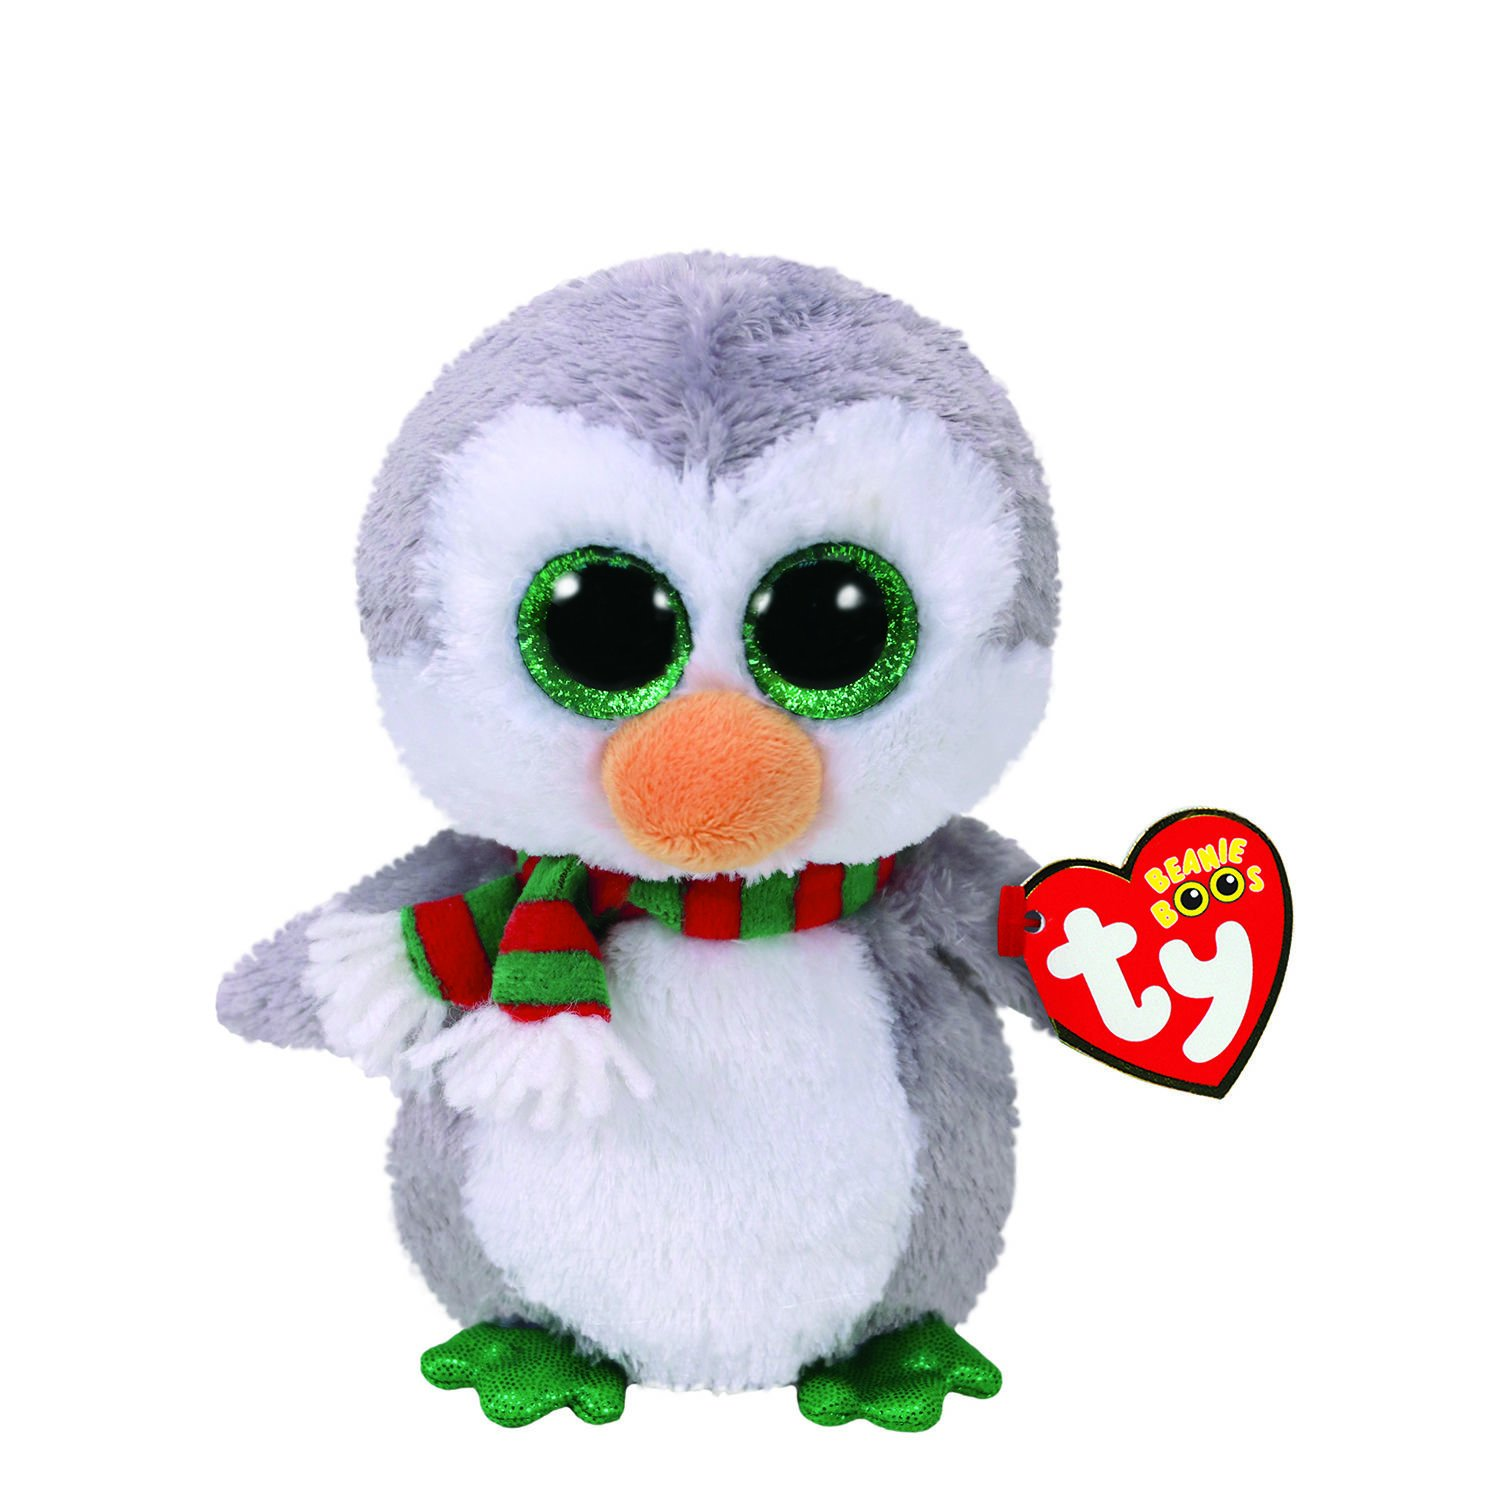 e76b6e9e81d Amazon.com  Claires Girls TY Beanie Boo Chilly the Penguin Small Plush Toy  in White Grey  Claire s  Clothing